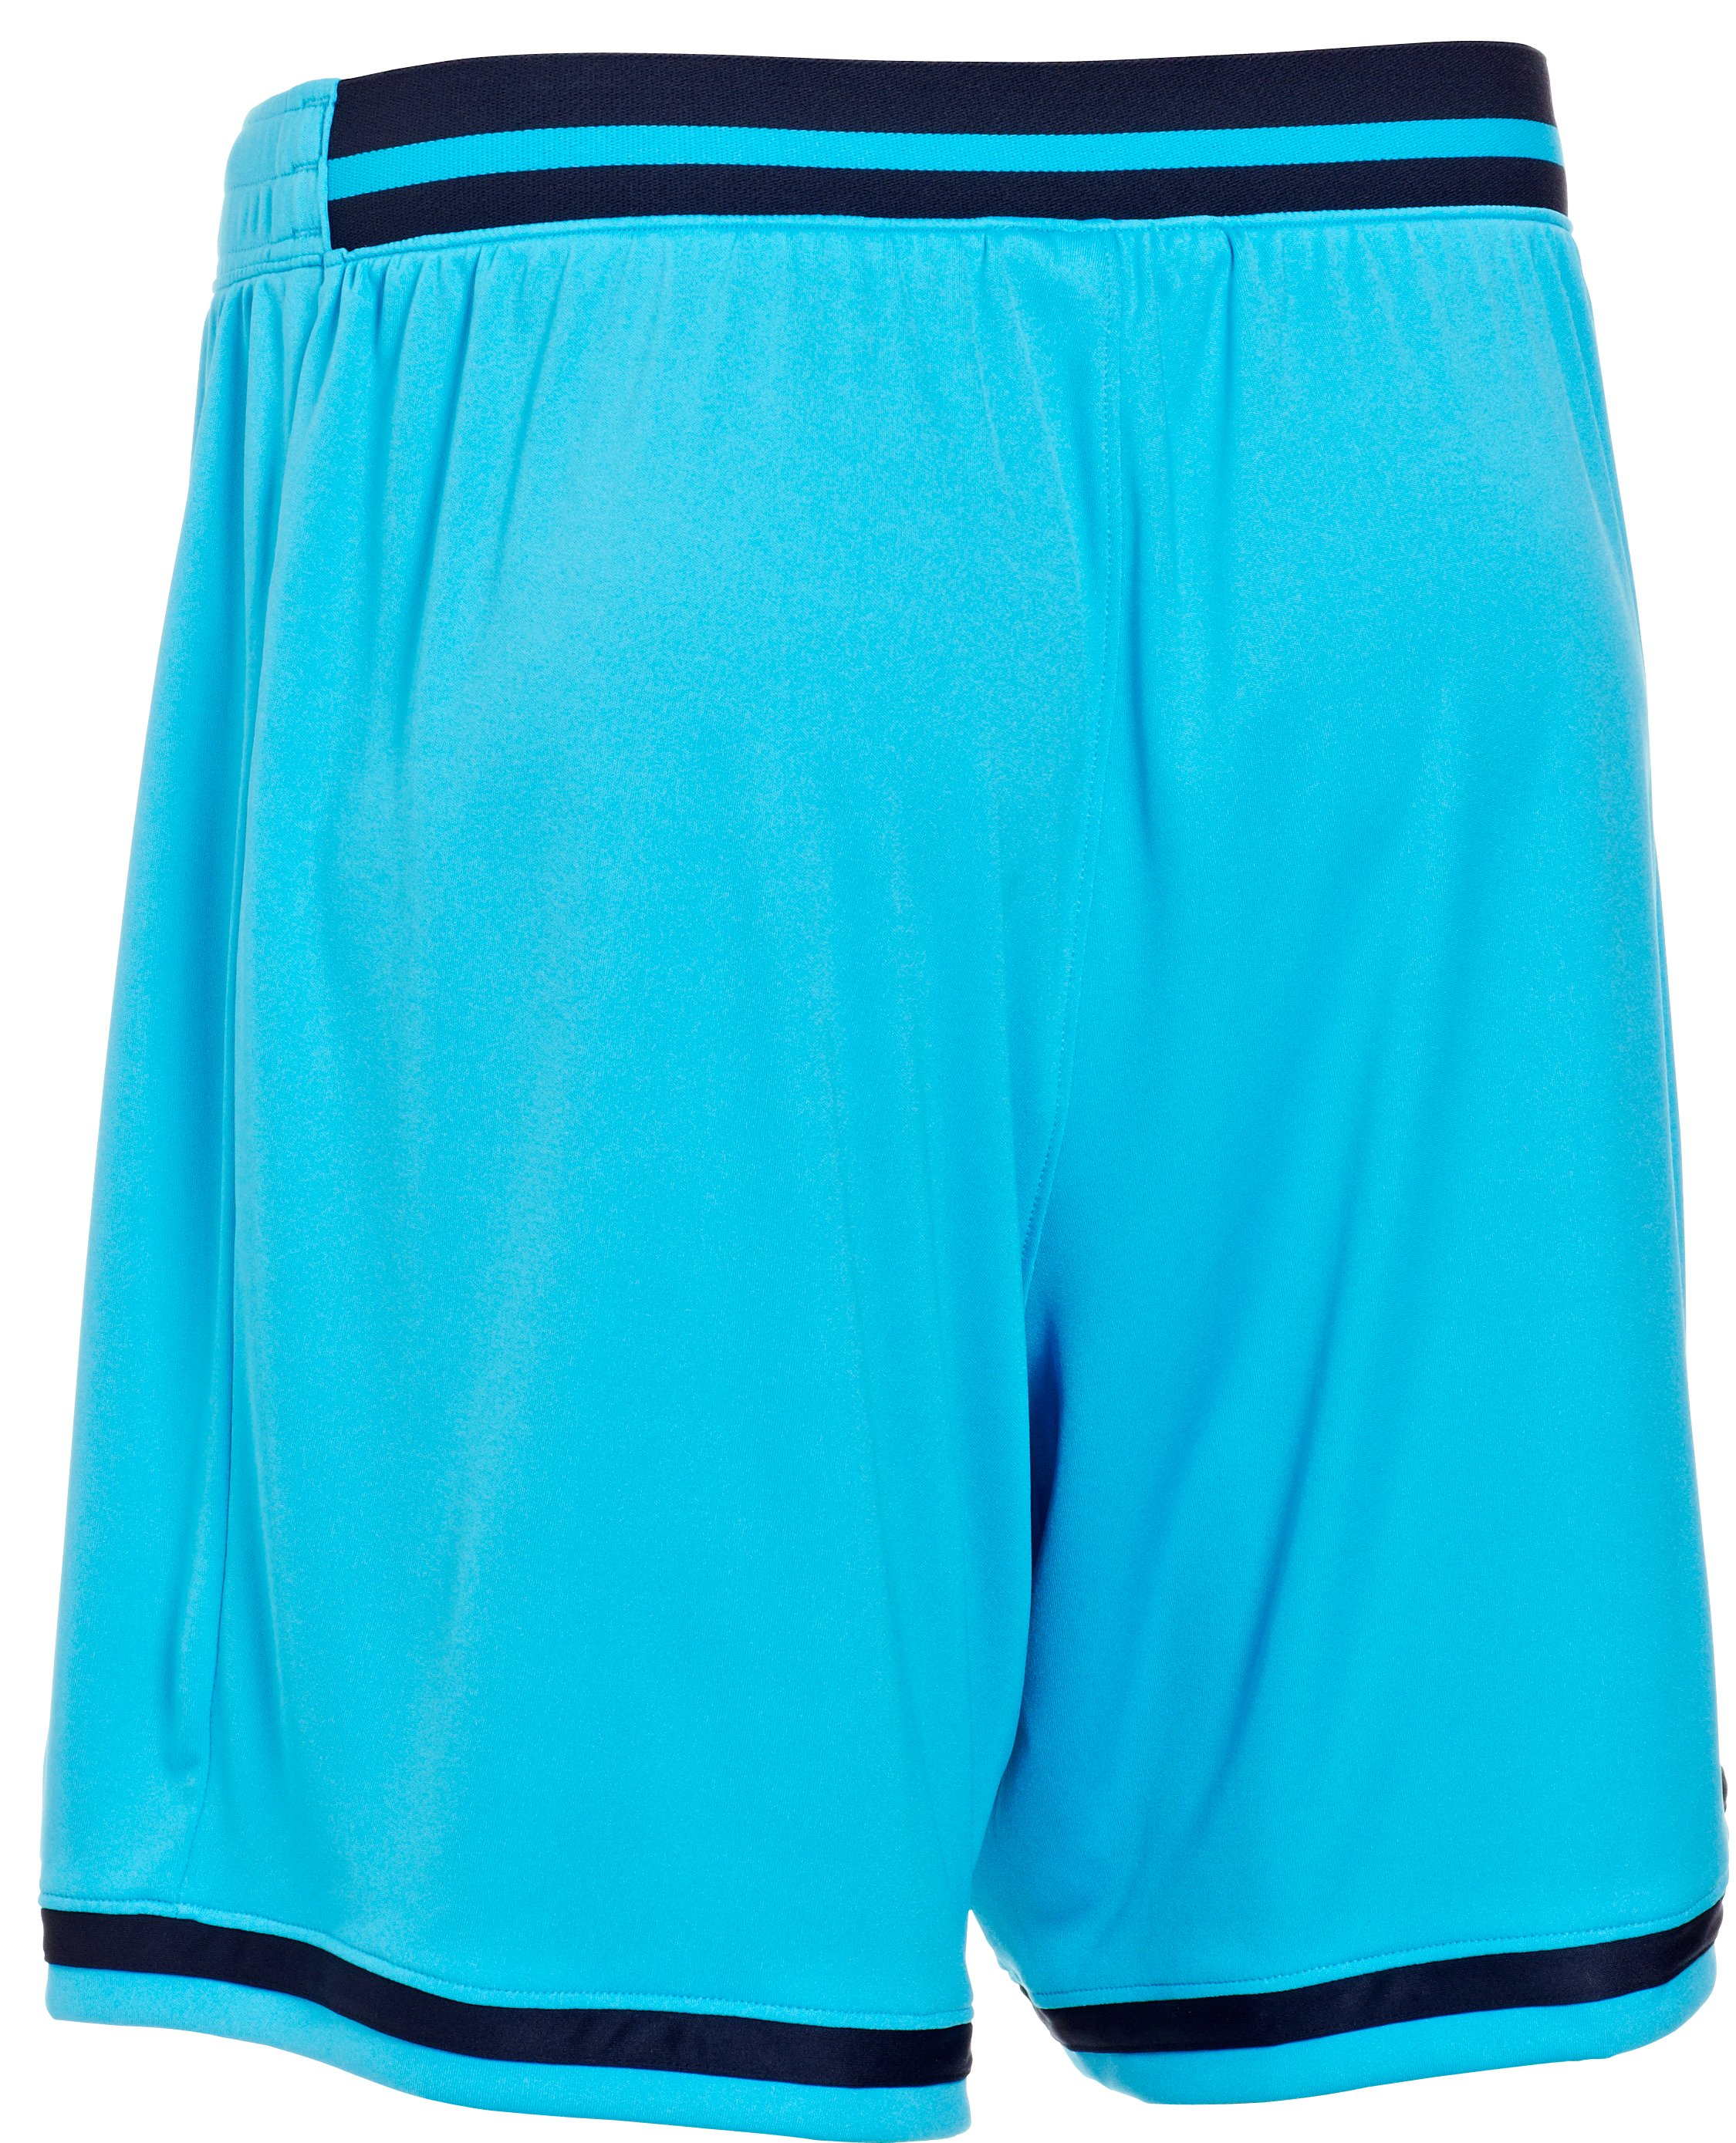 Men's Tottenham Hotspur 13/14 Away/Third Shorts, Capri